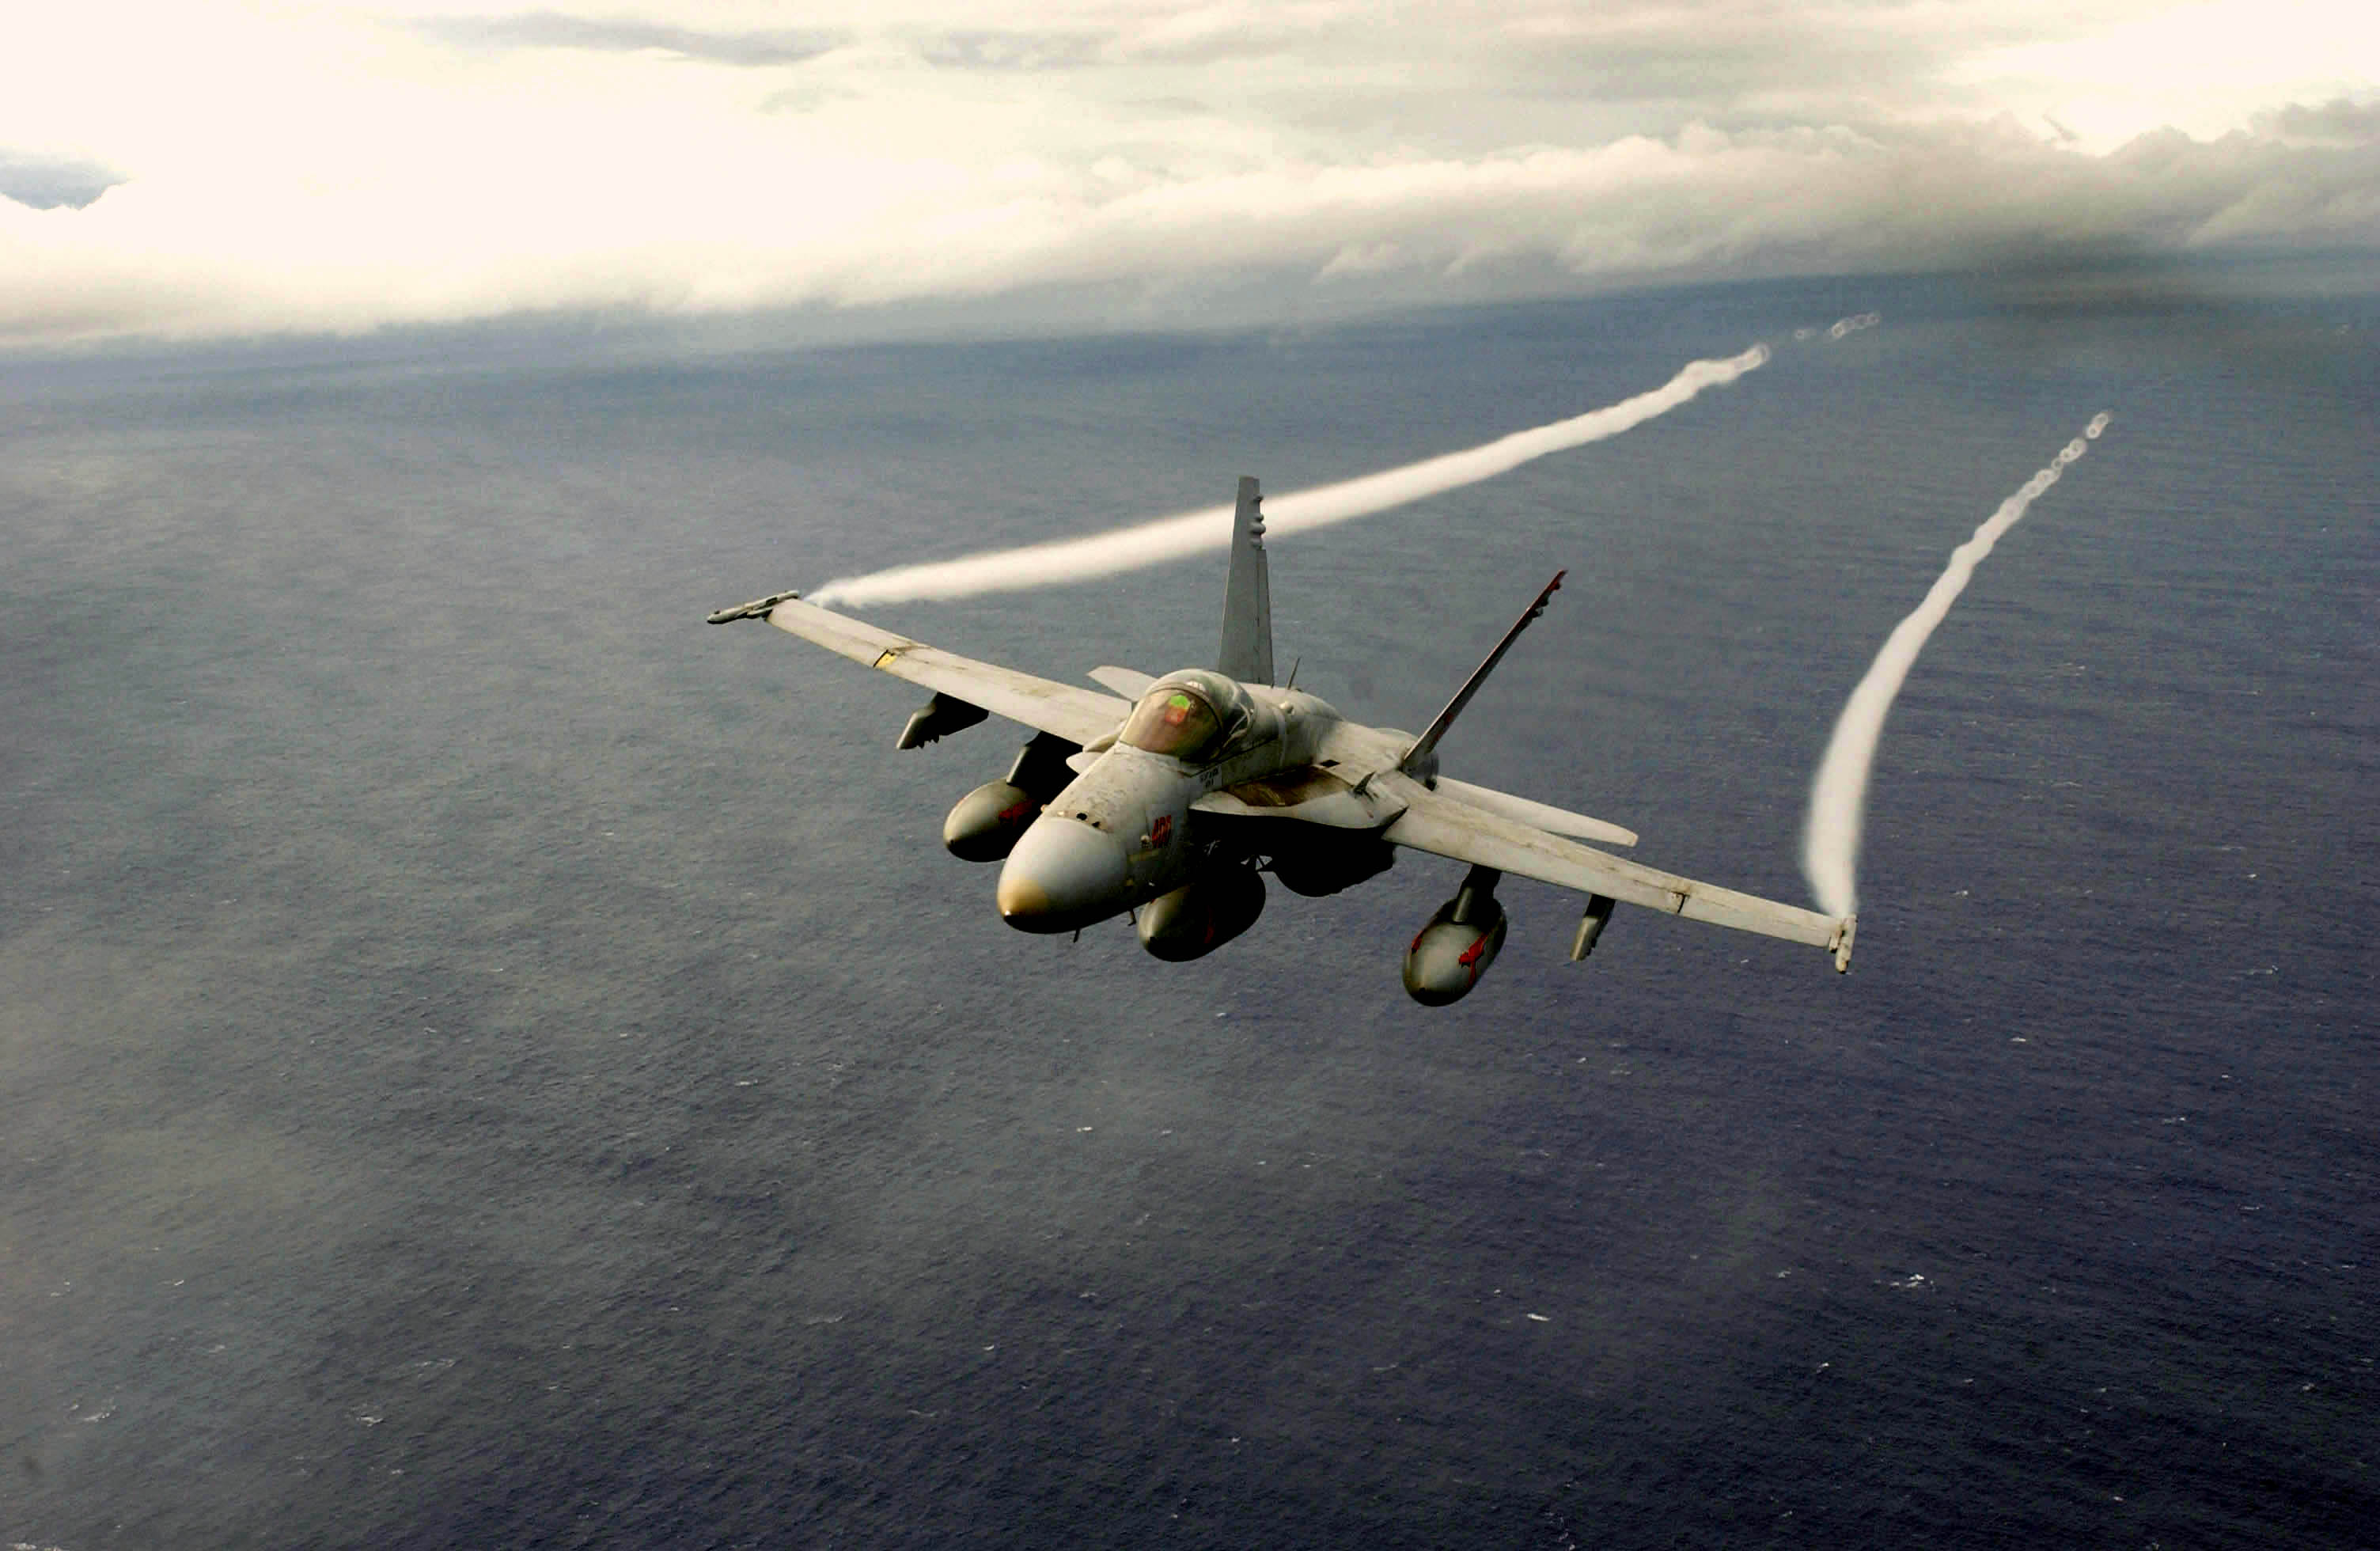 File:US Navy 031025-N-6536T-005 An F-A-18 Hornet assigned to